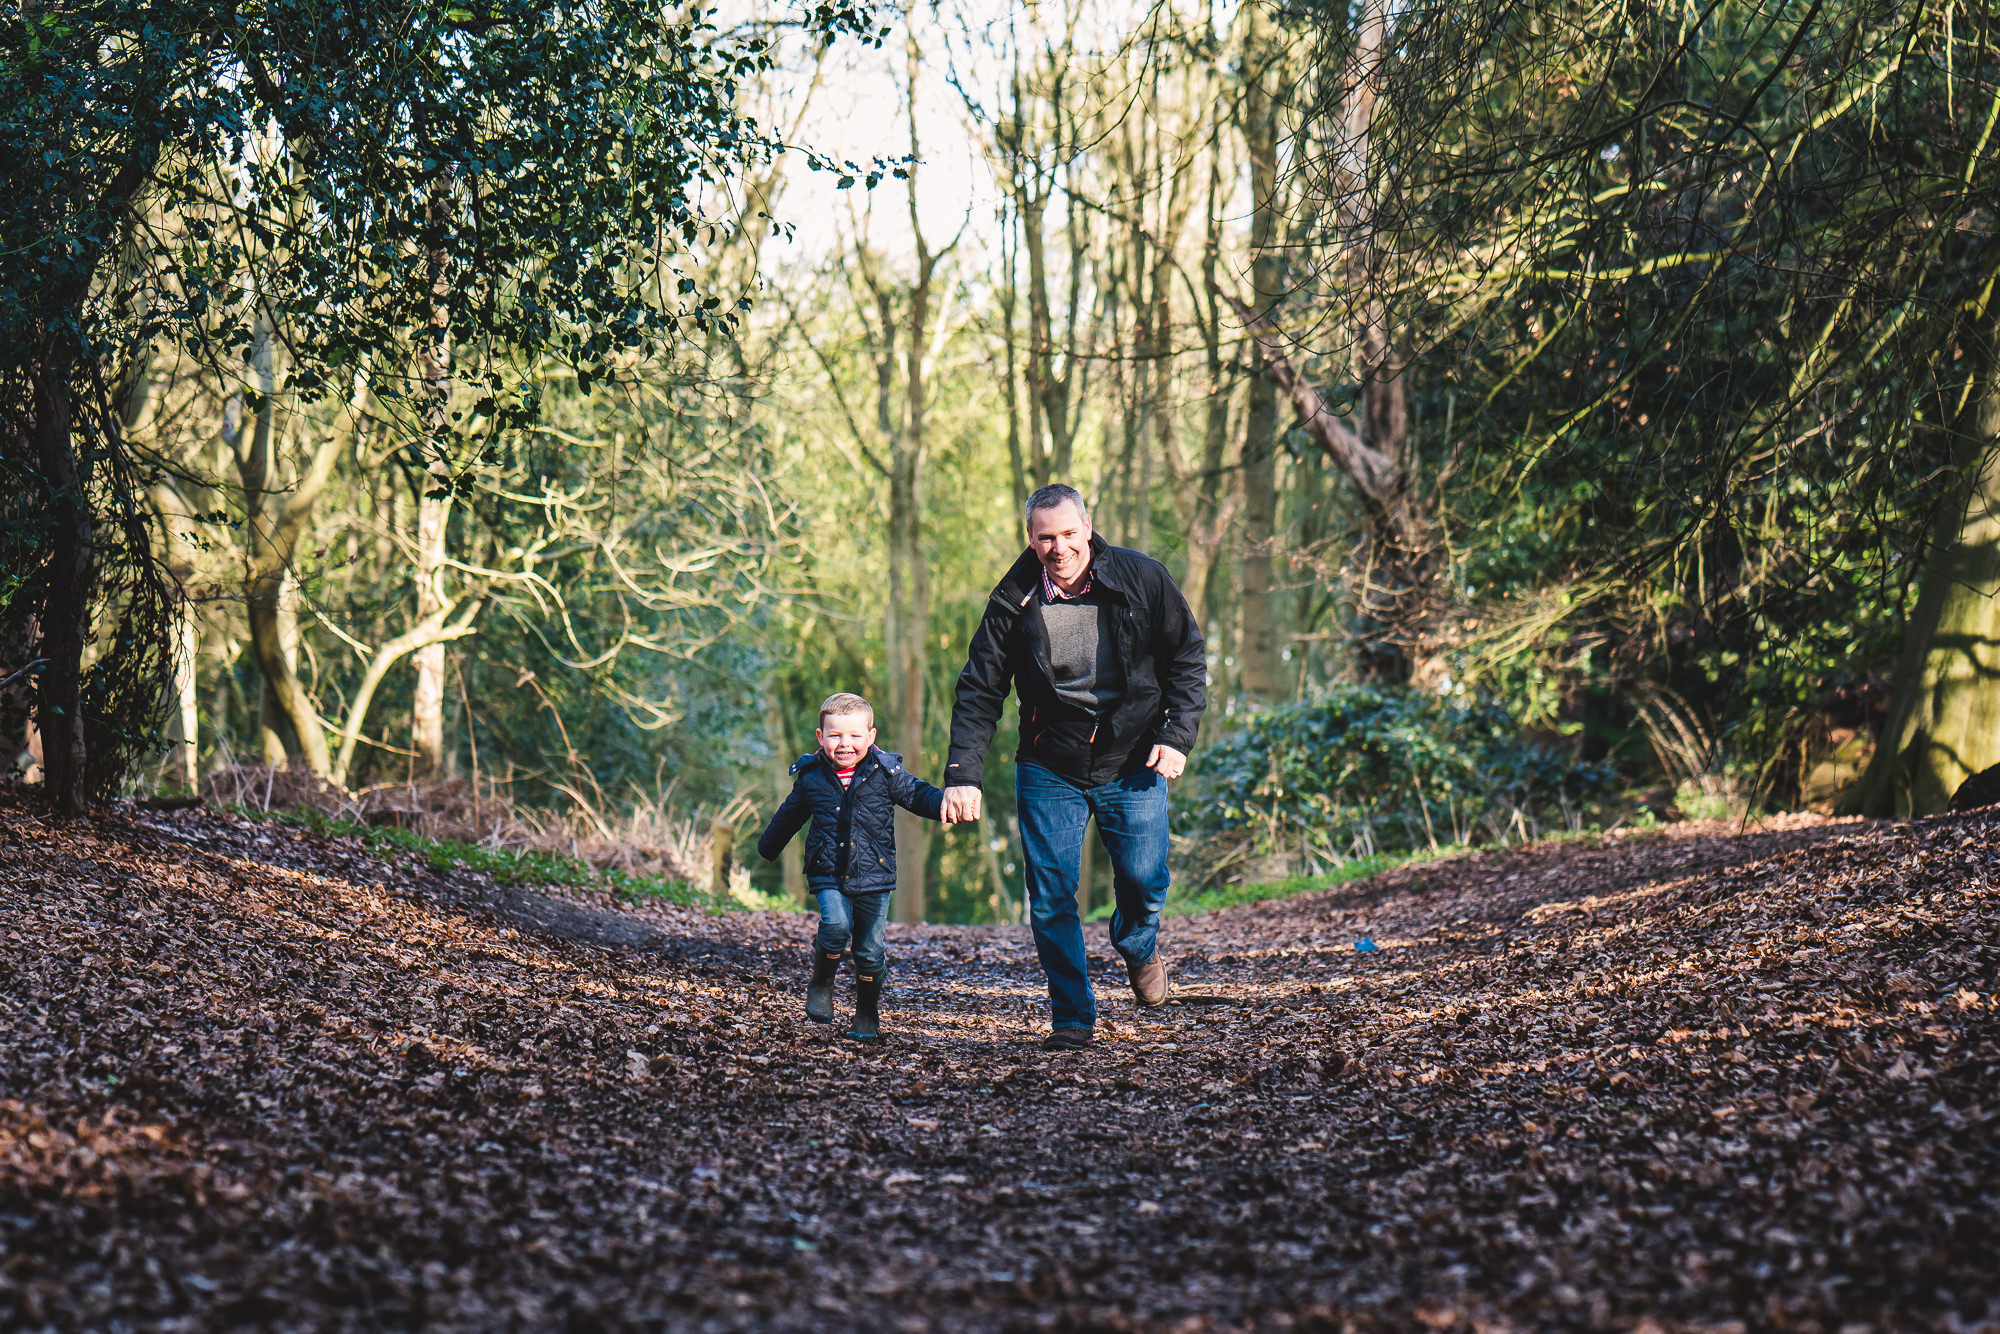 chicksands wood campton plantation bedfordshire family shoot-1083.jpg